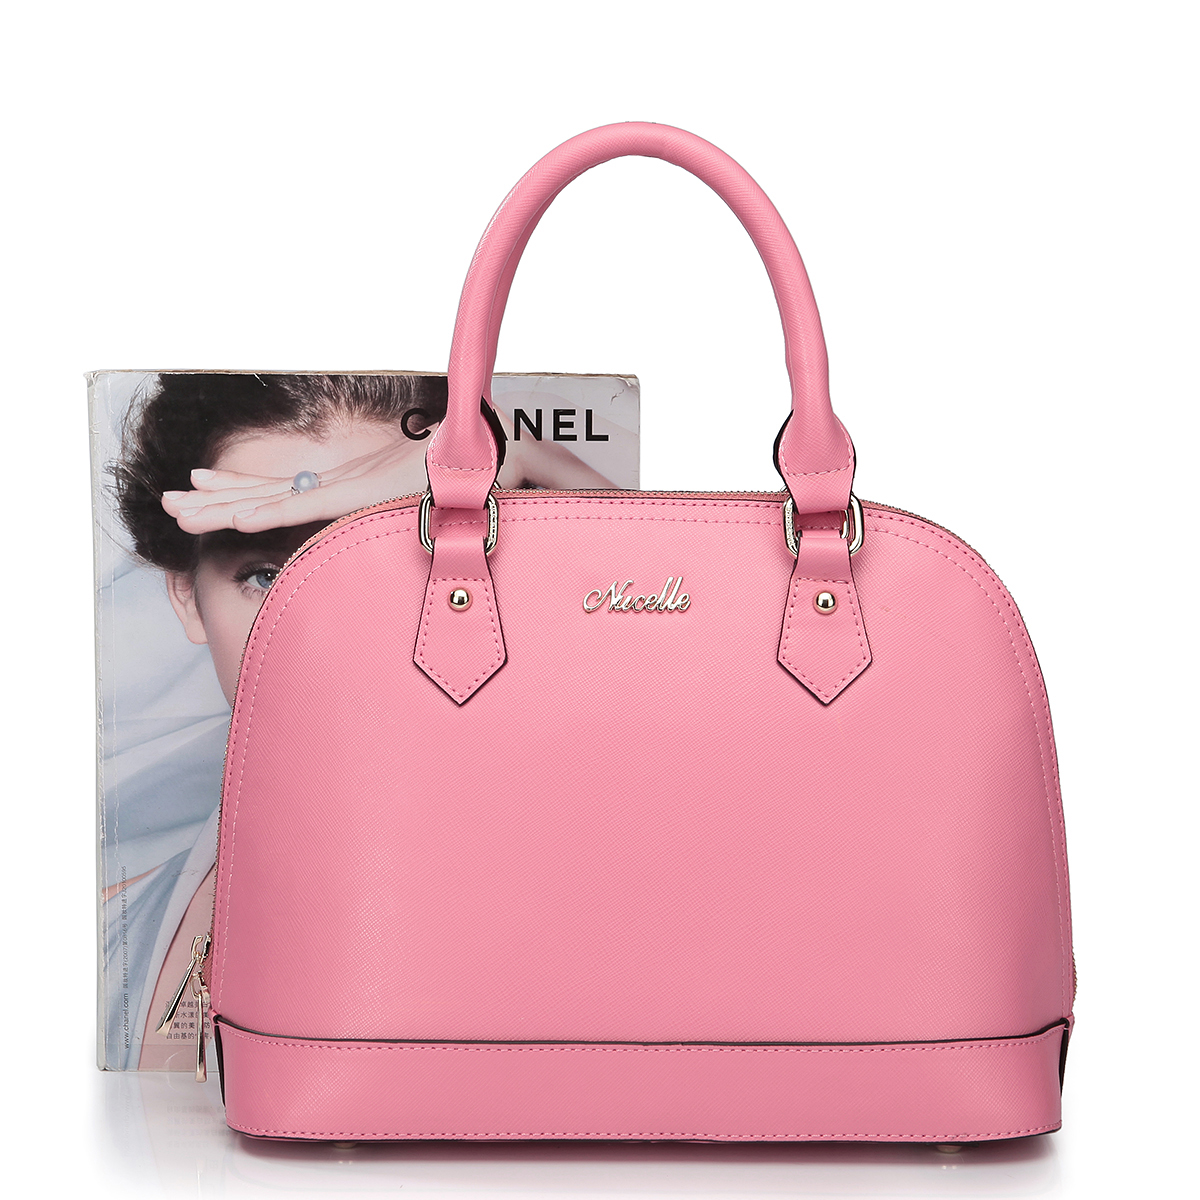 lady leather bags Pink